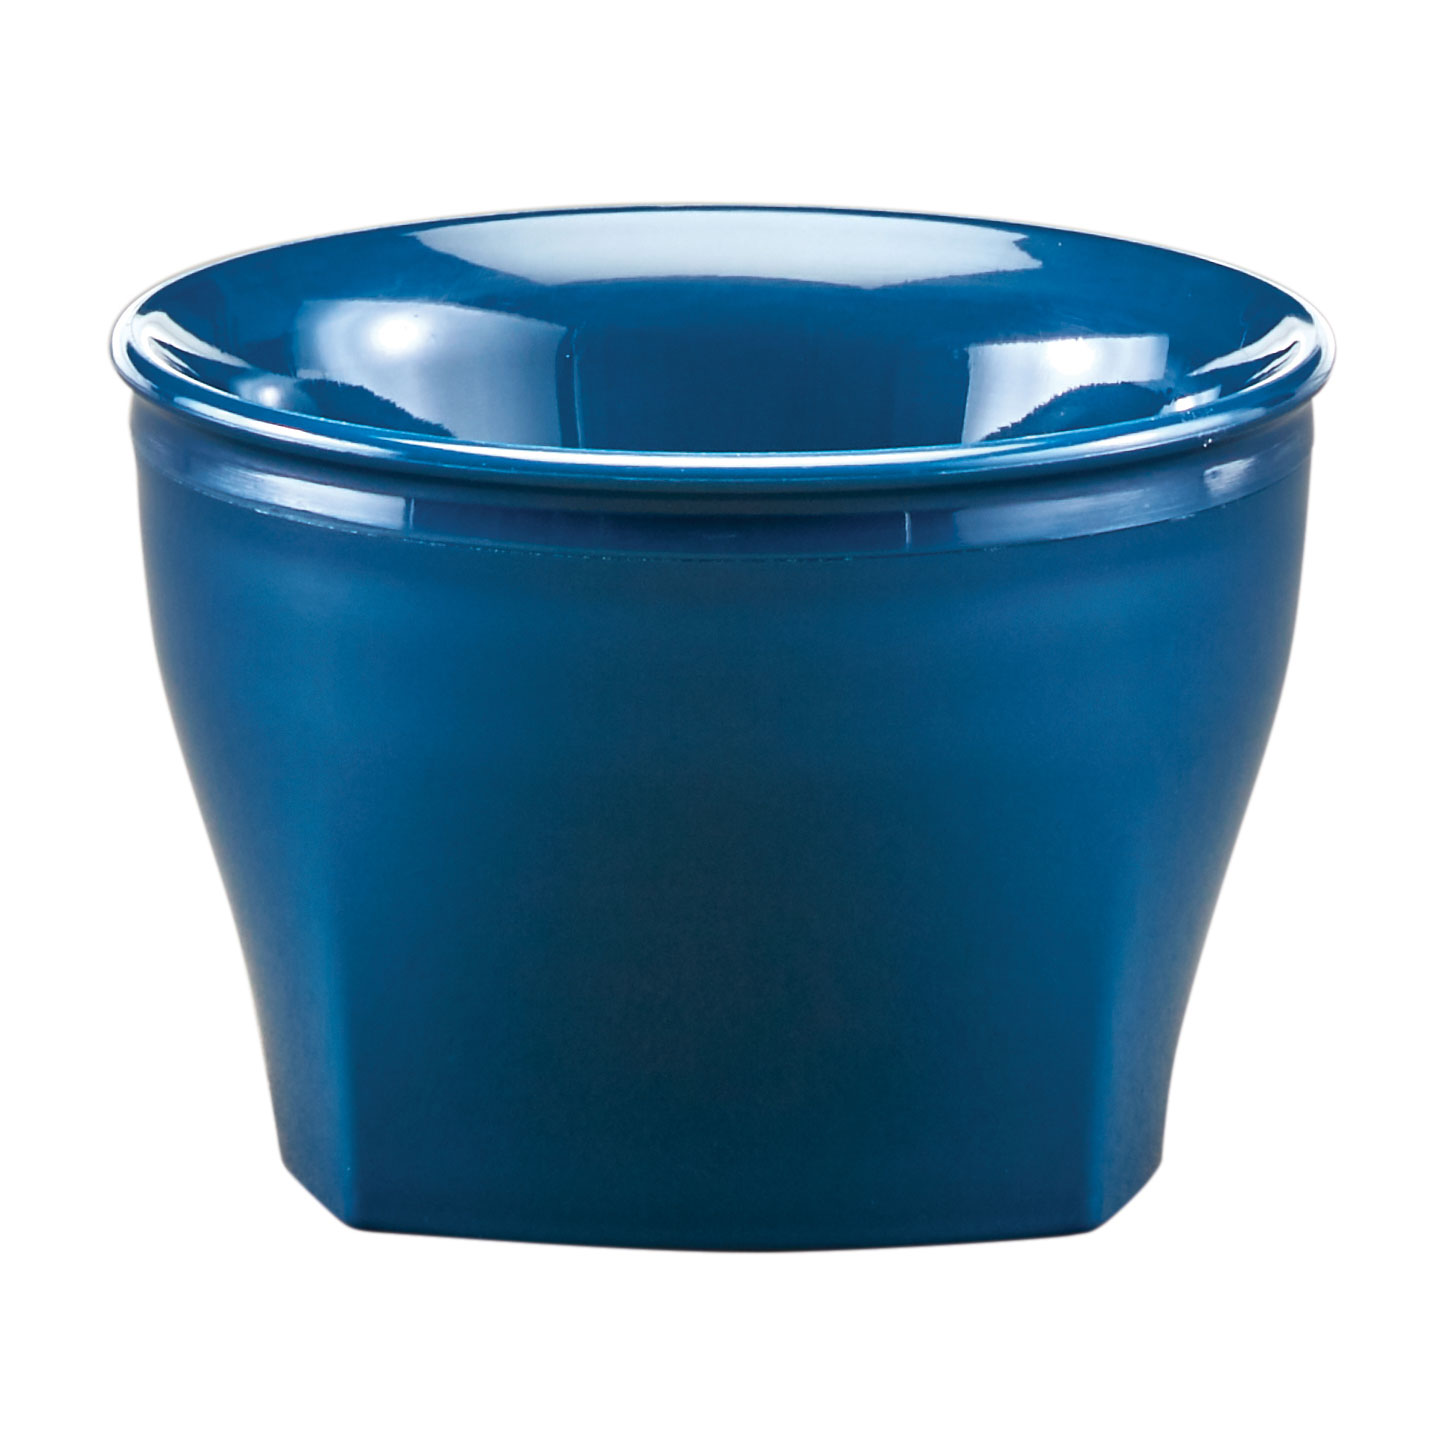 Cambro MDSHB5497 bowls (non disposable)